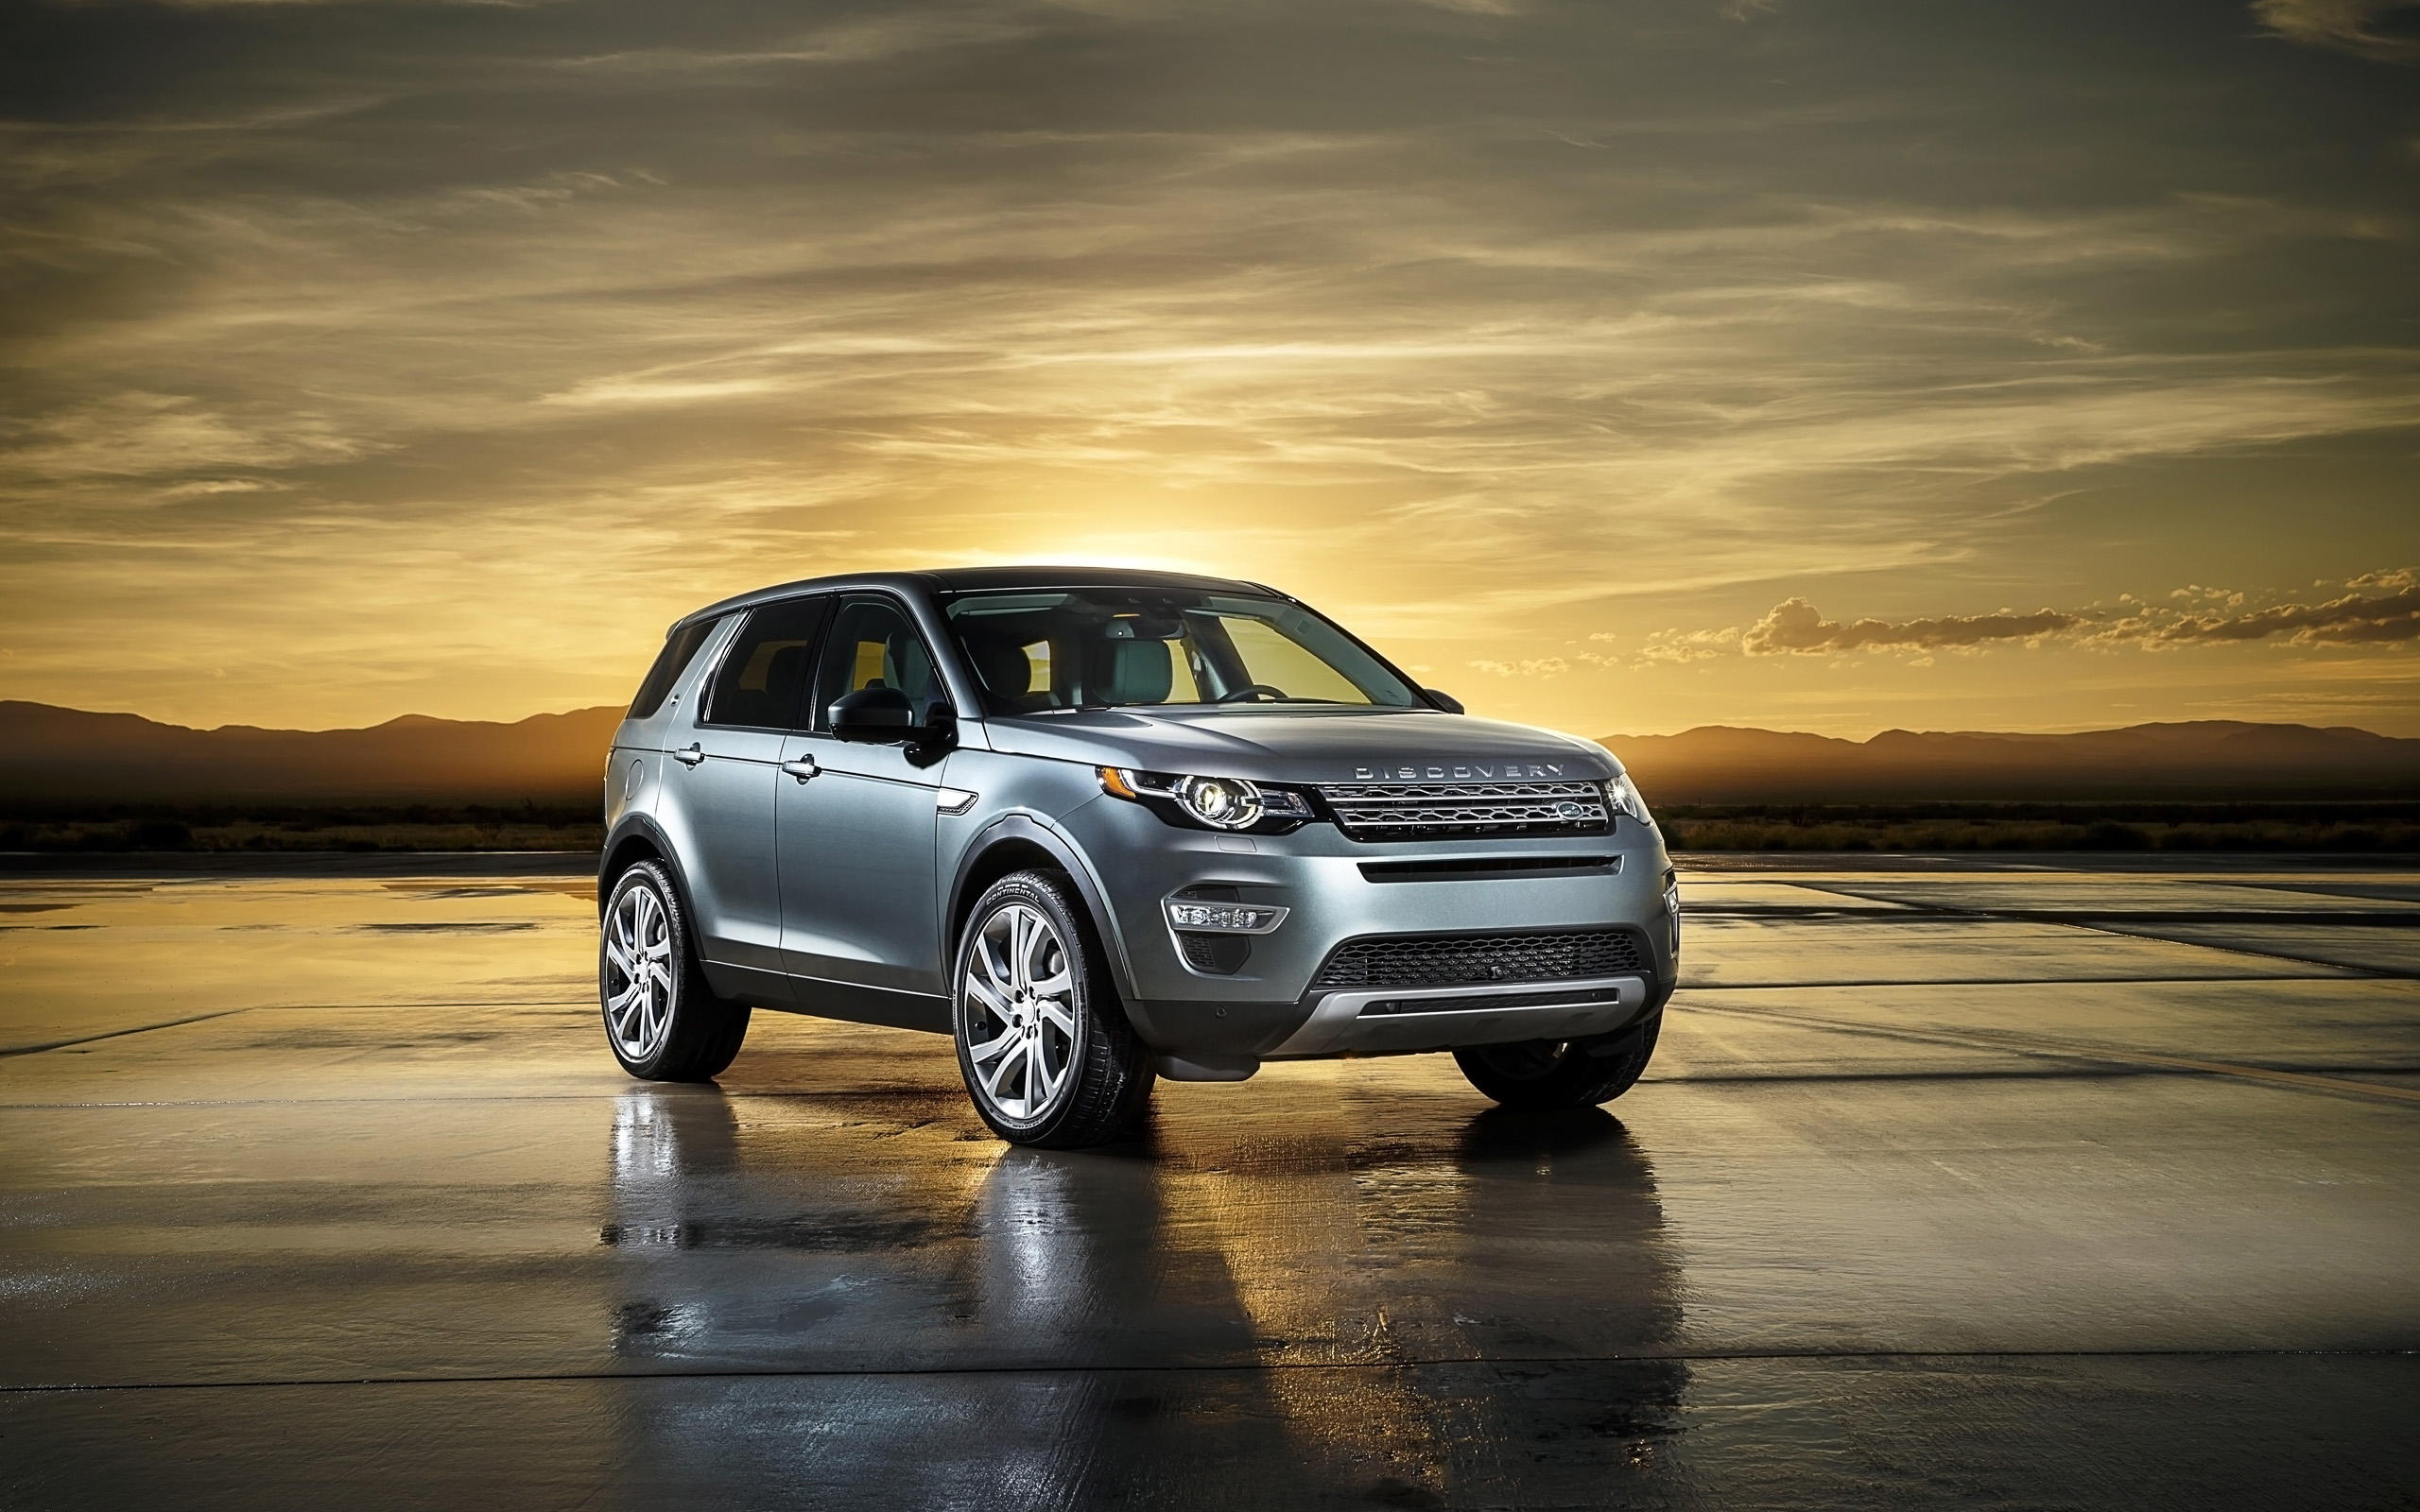 2015 Land Rover Discovery Sport Weltraumbahnhof Side Angle wallpapers ...